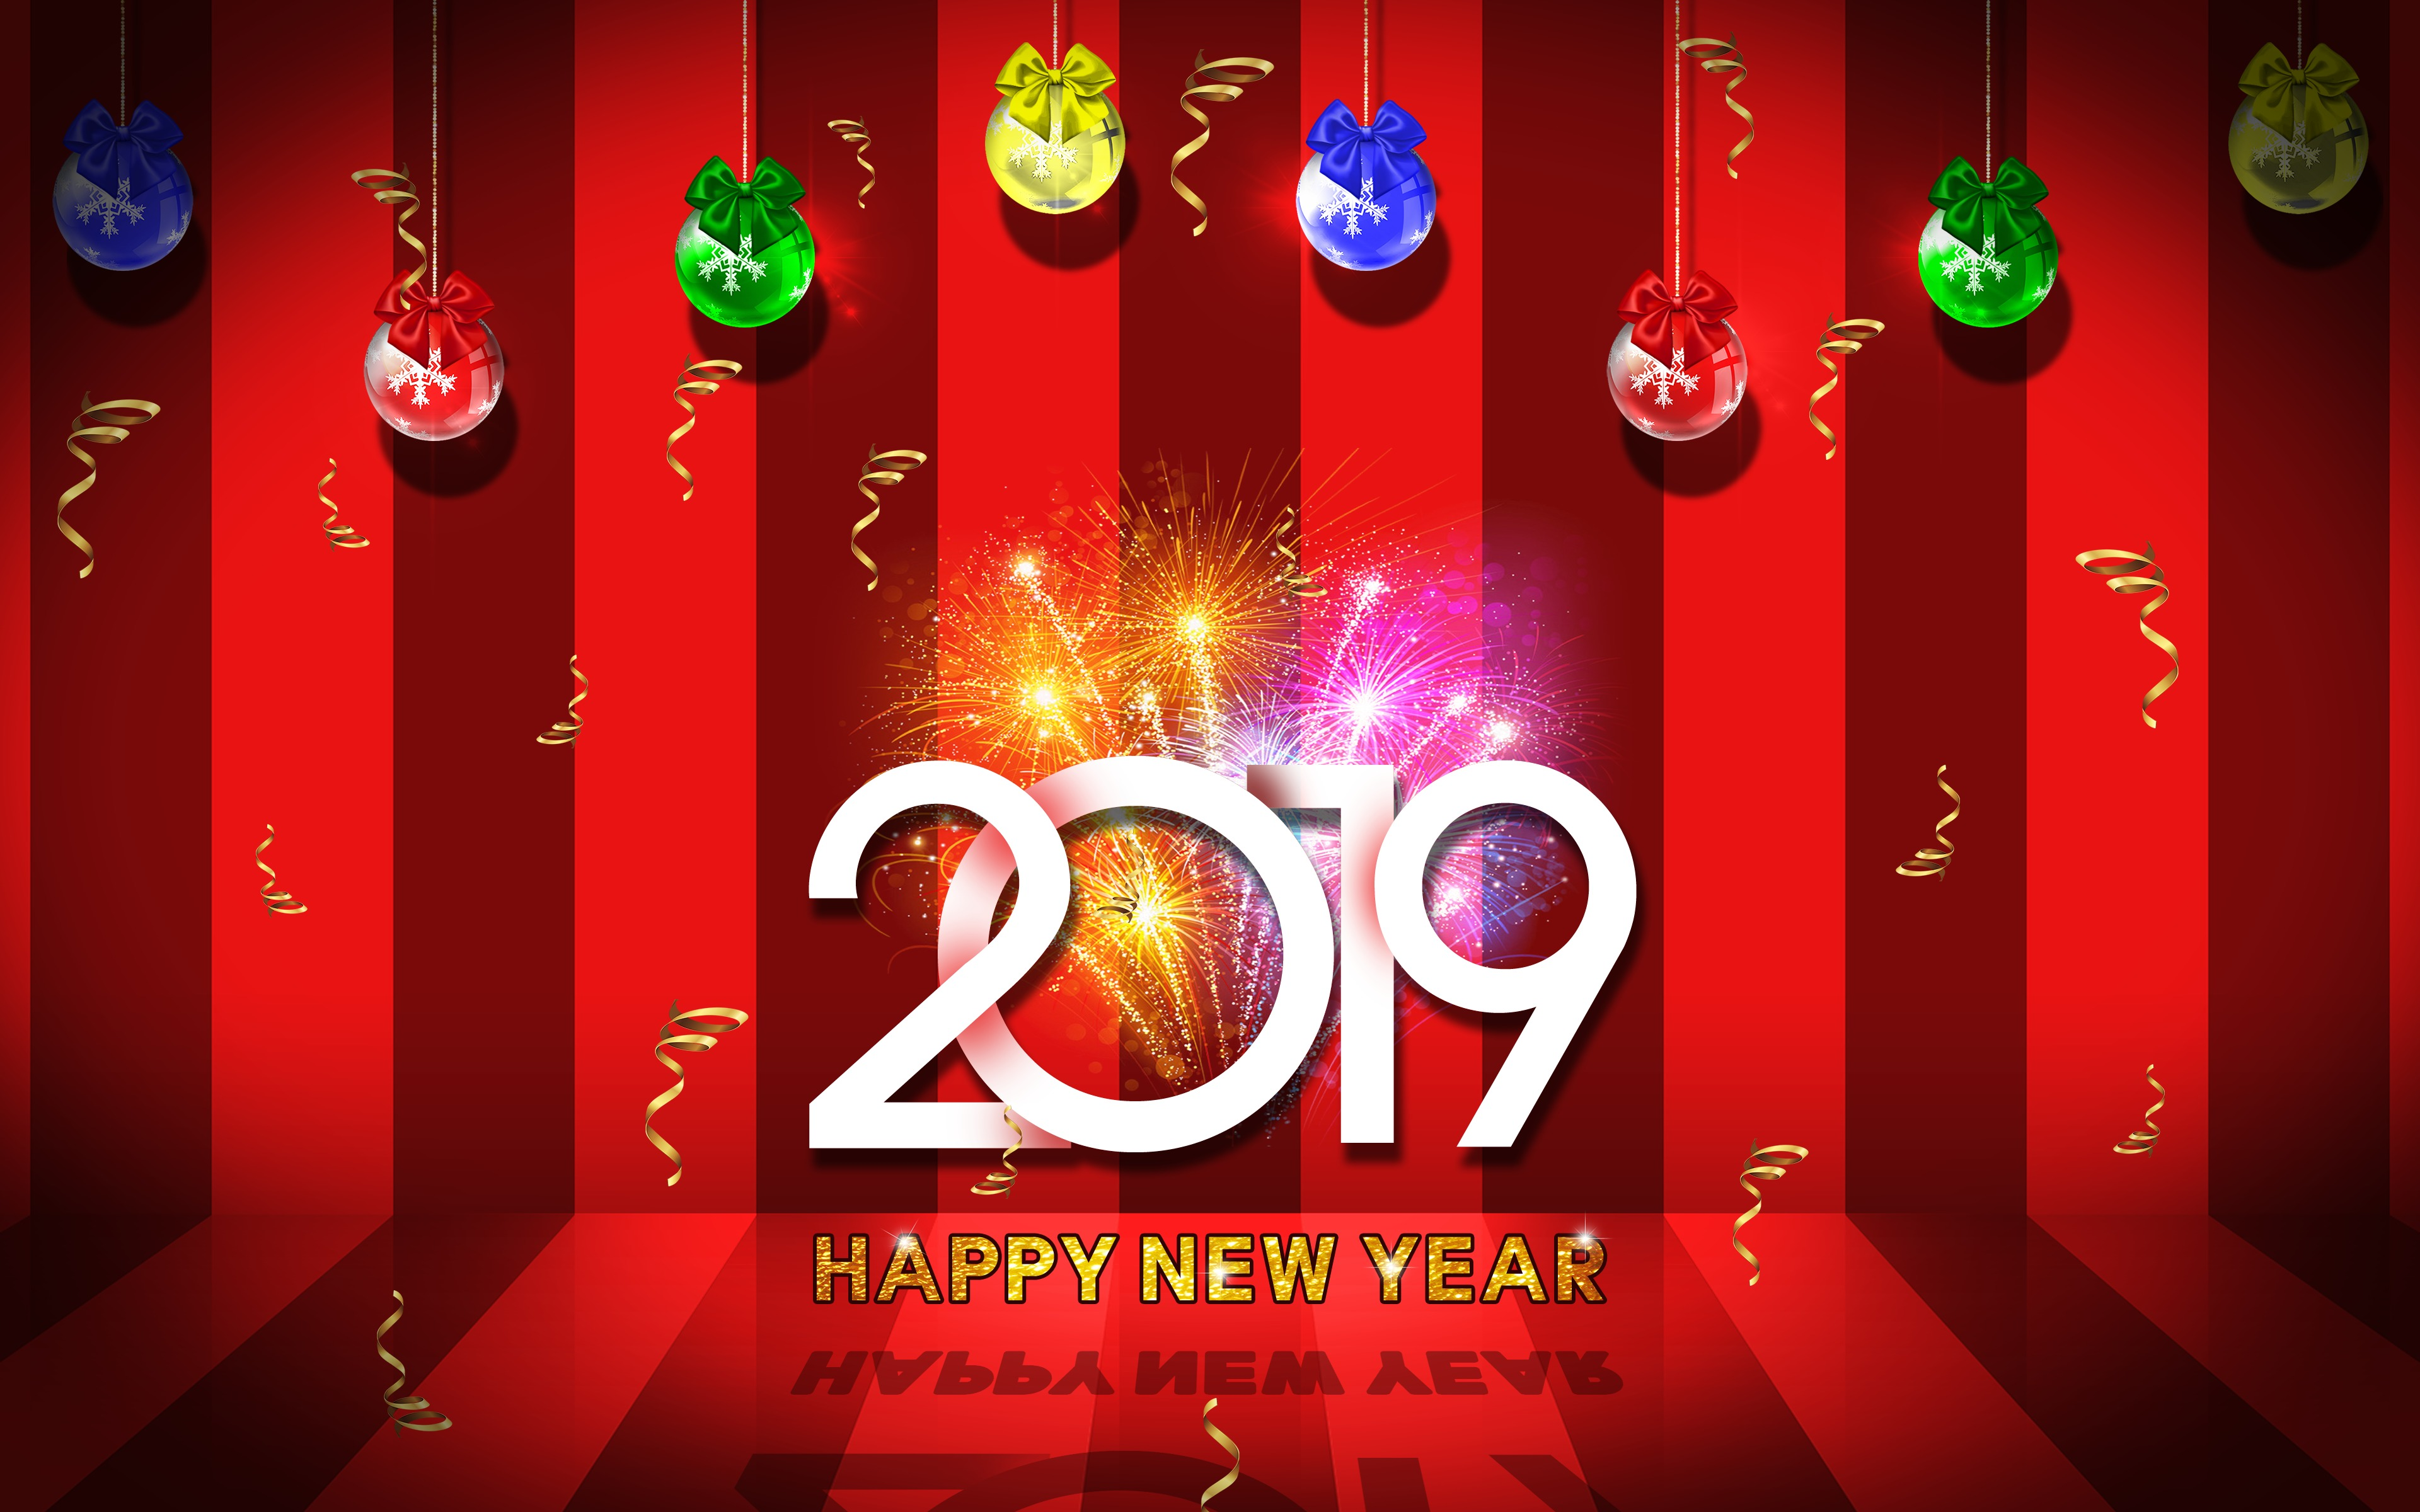 2019 Happy New Year Wallpaper, HD Holidays 4K Wallpapers, Images